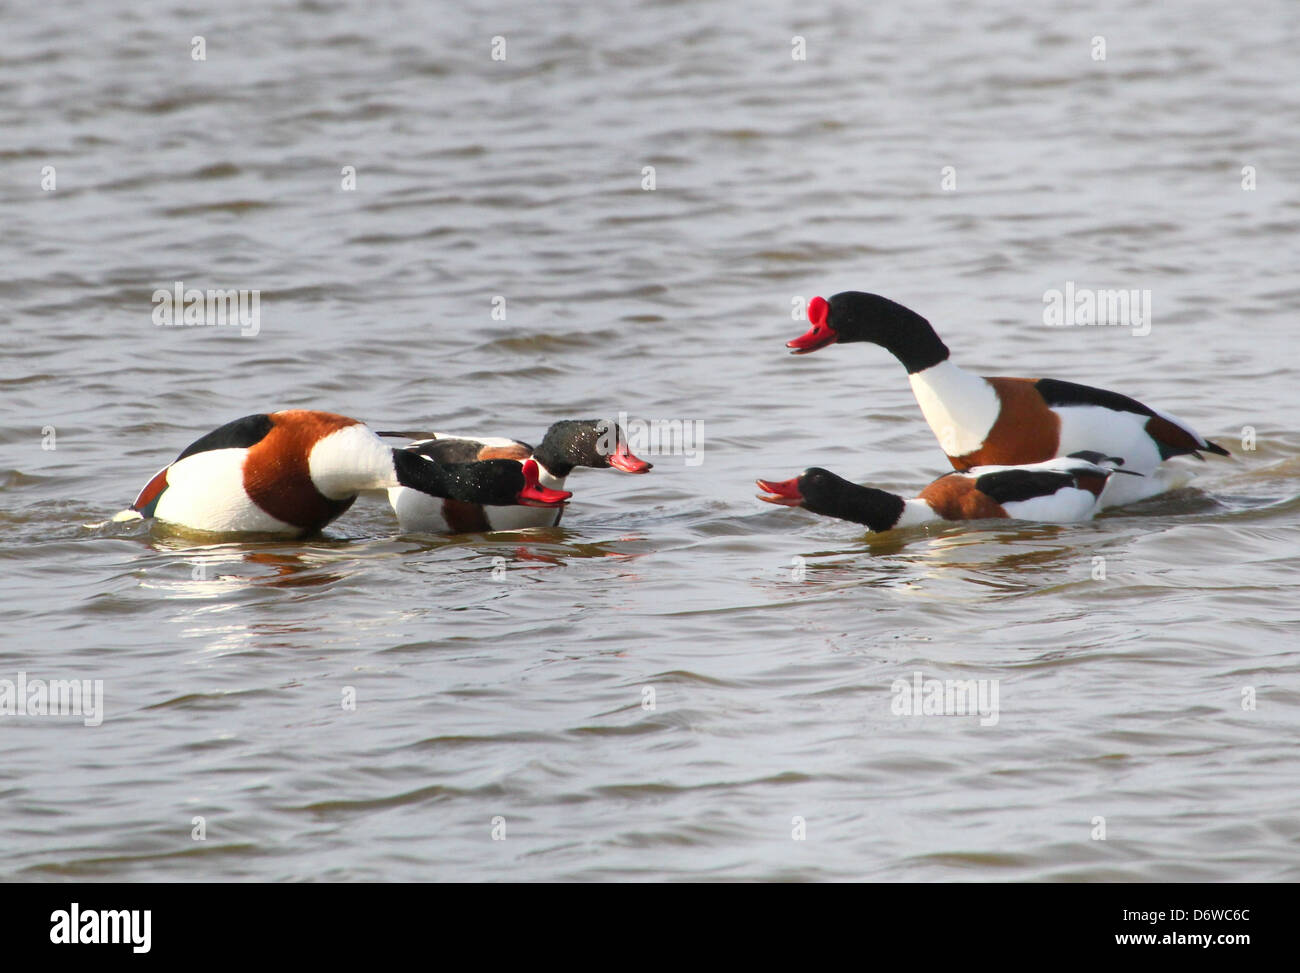 Group of ferocious and bad tempered Shelducks (Tadorna Tadorna) fighting - Stock Image